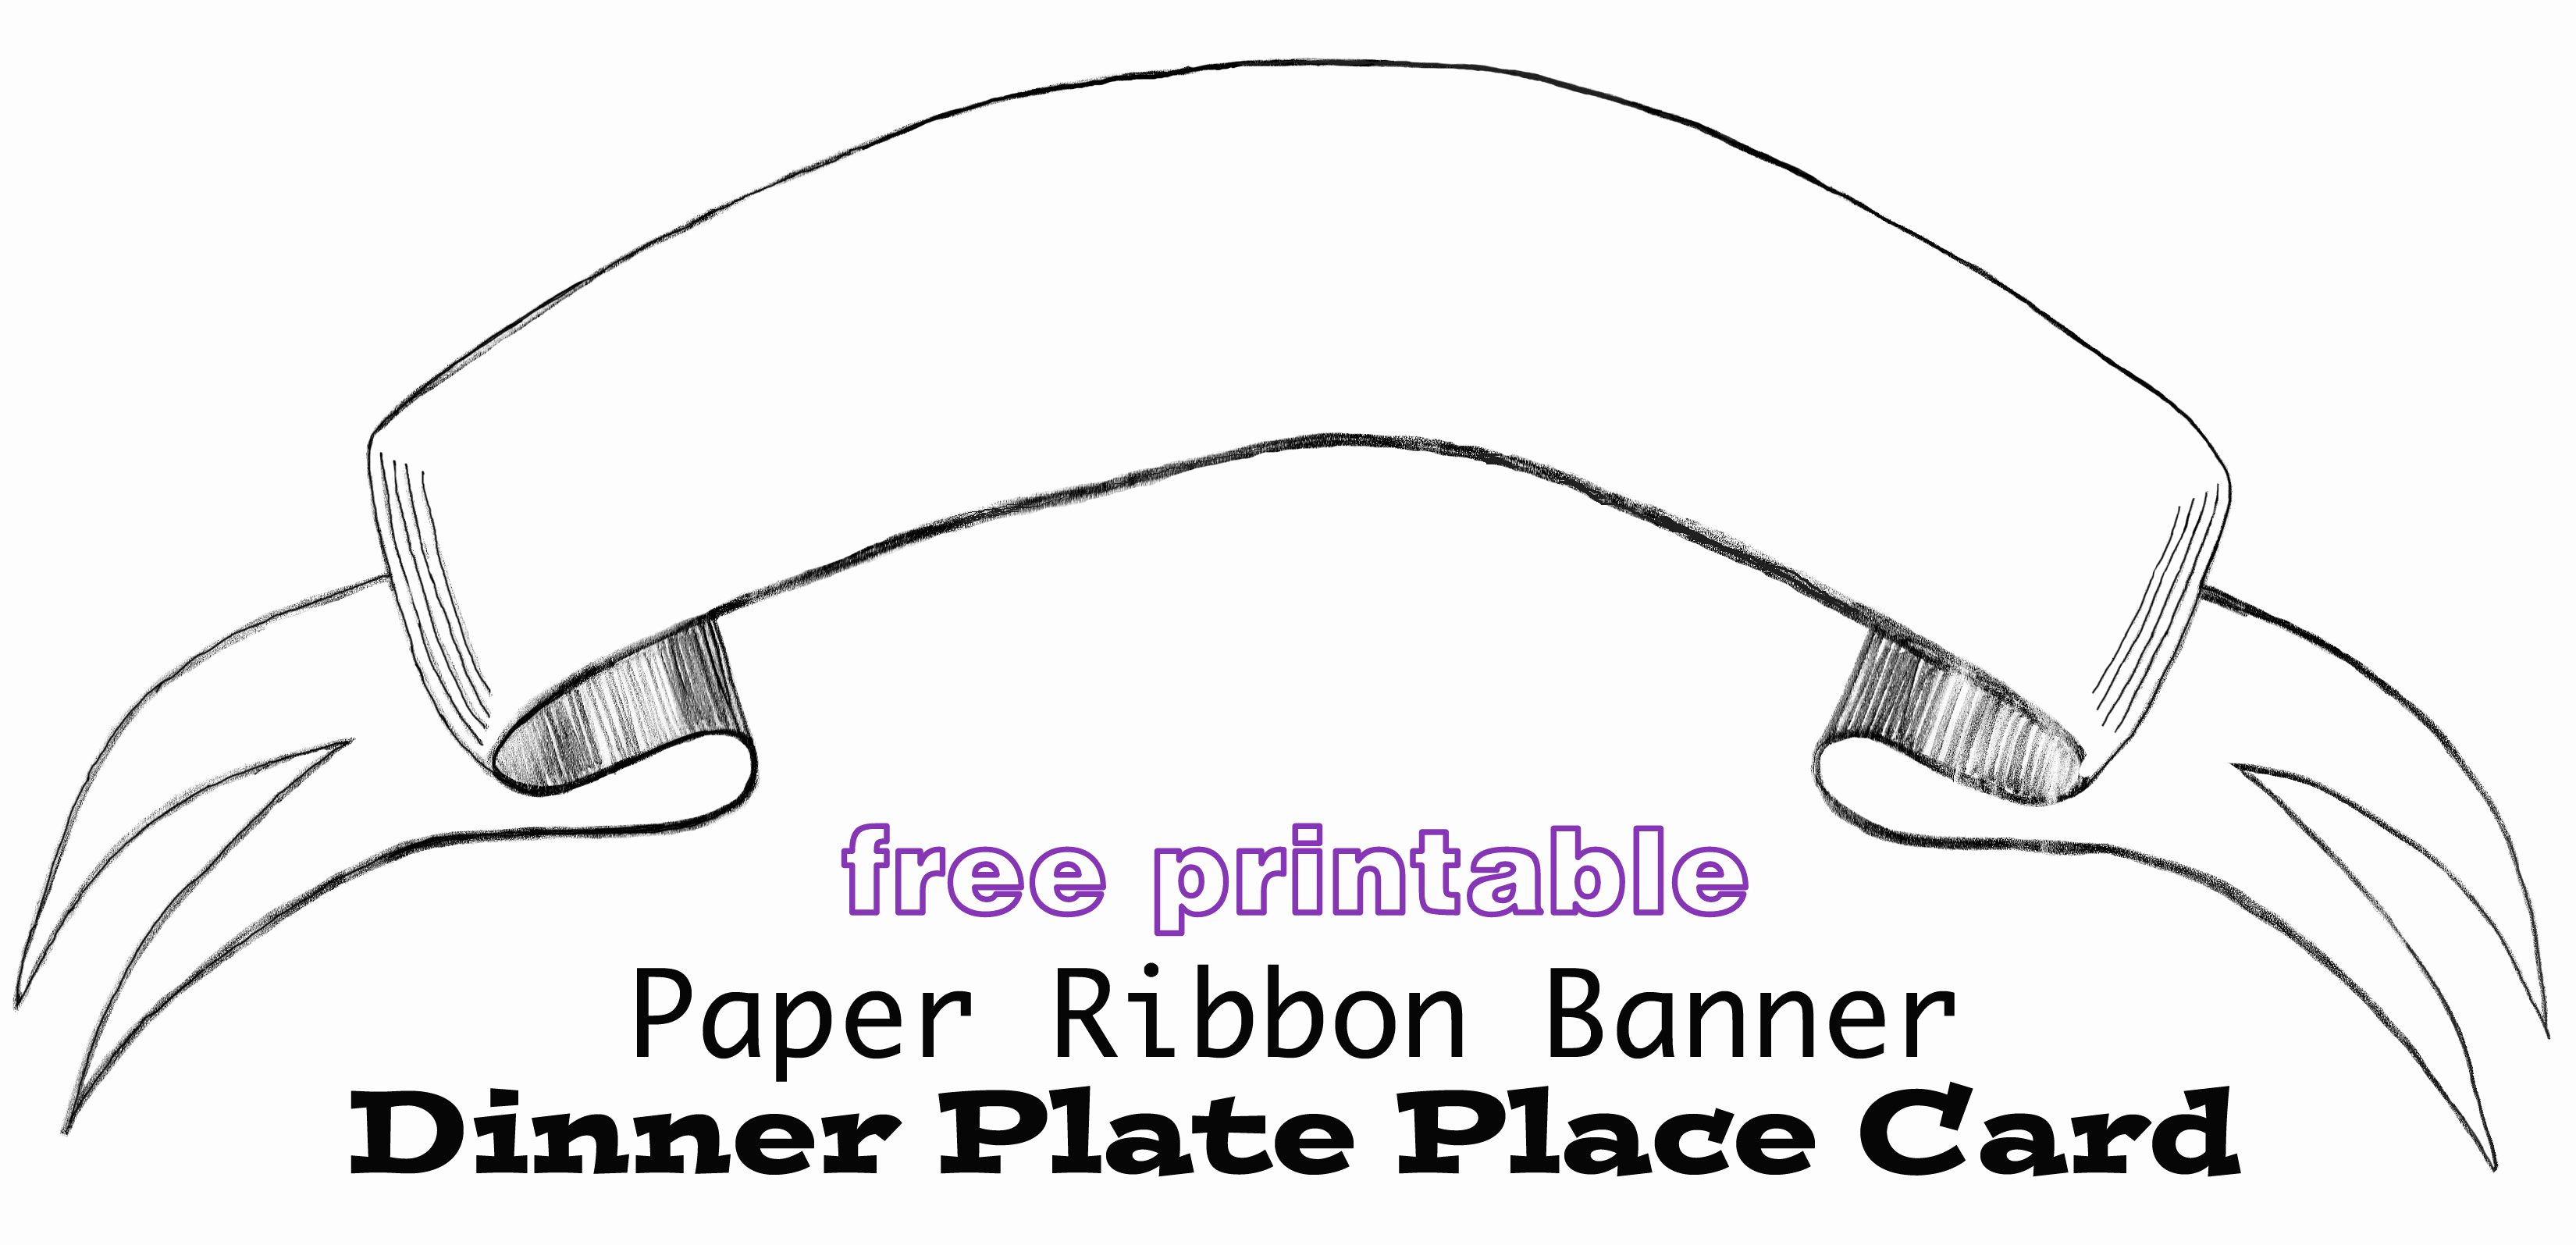 Ribbon Banner Template Beautiful Printable Paper Banner Dinner Plate Place Card In My Own